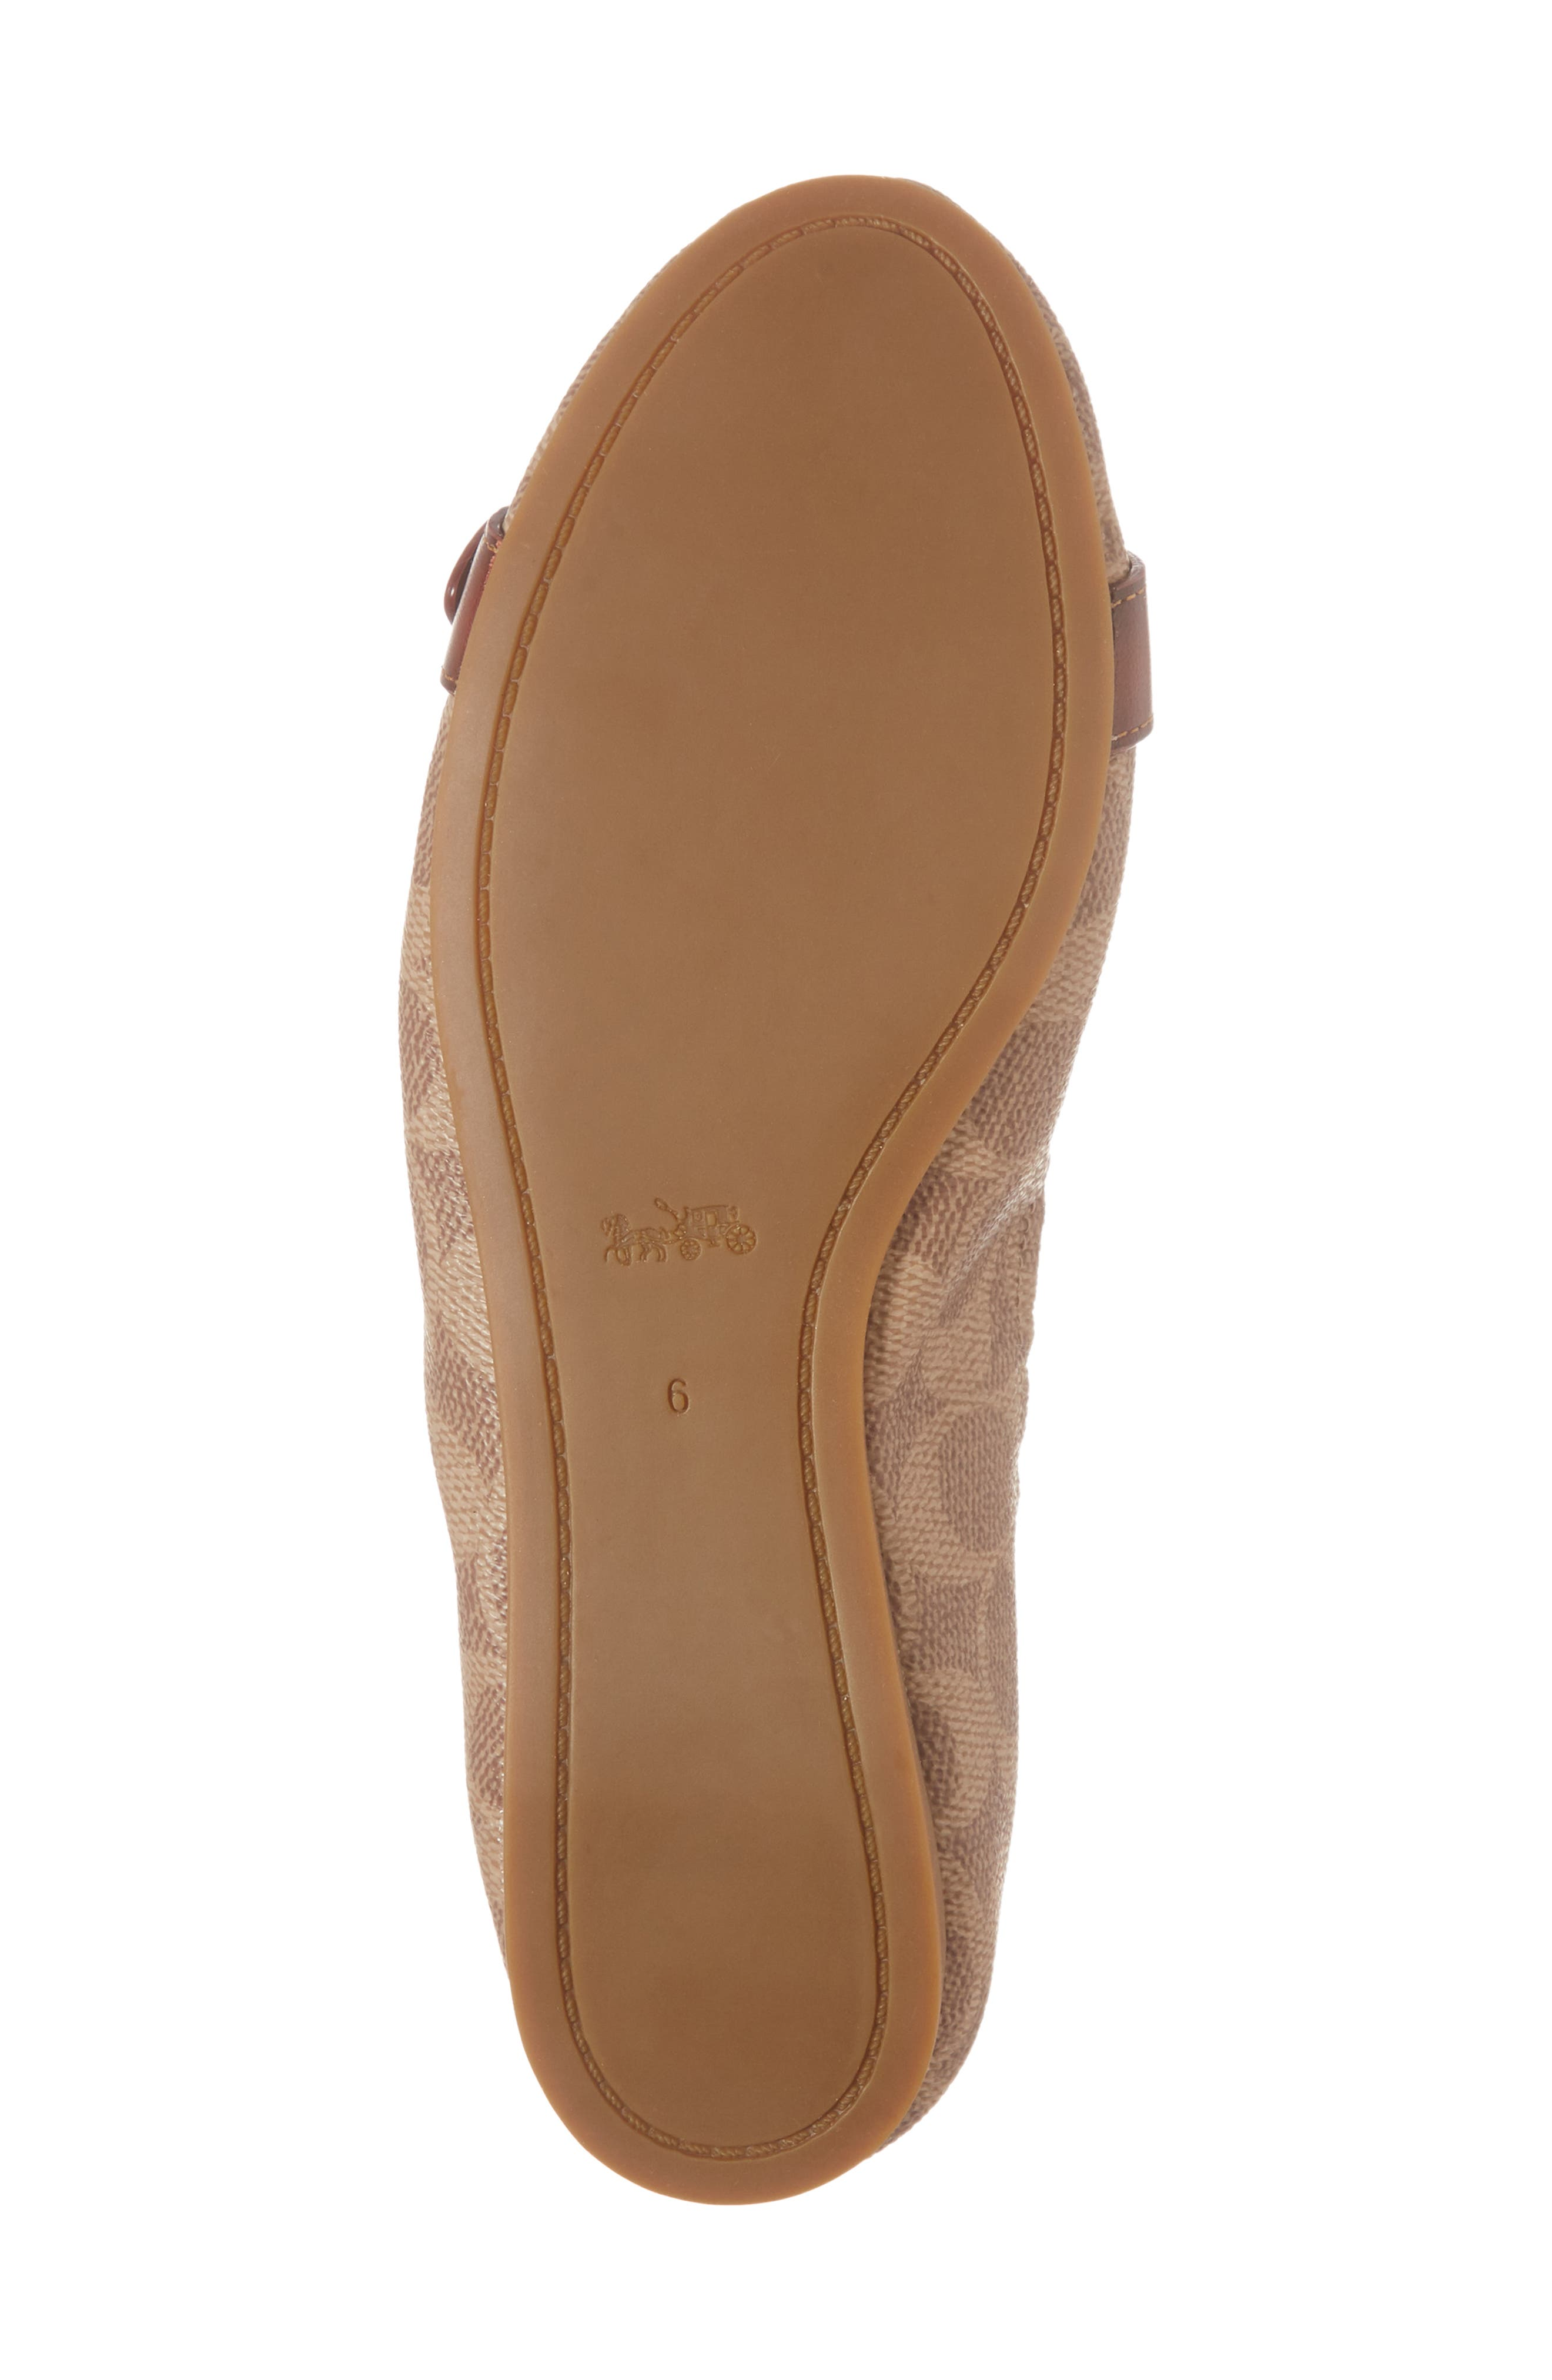 COACH, Stanton Buckle Flat, Alternate thumbnail 6, color, BROWN LEATHER